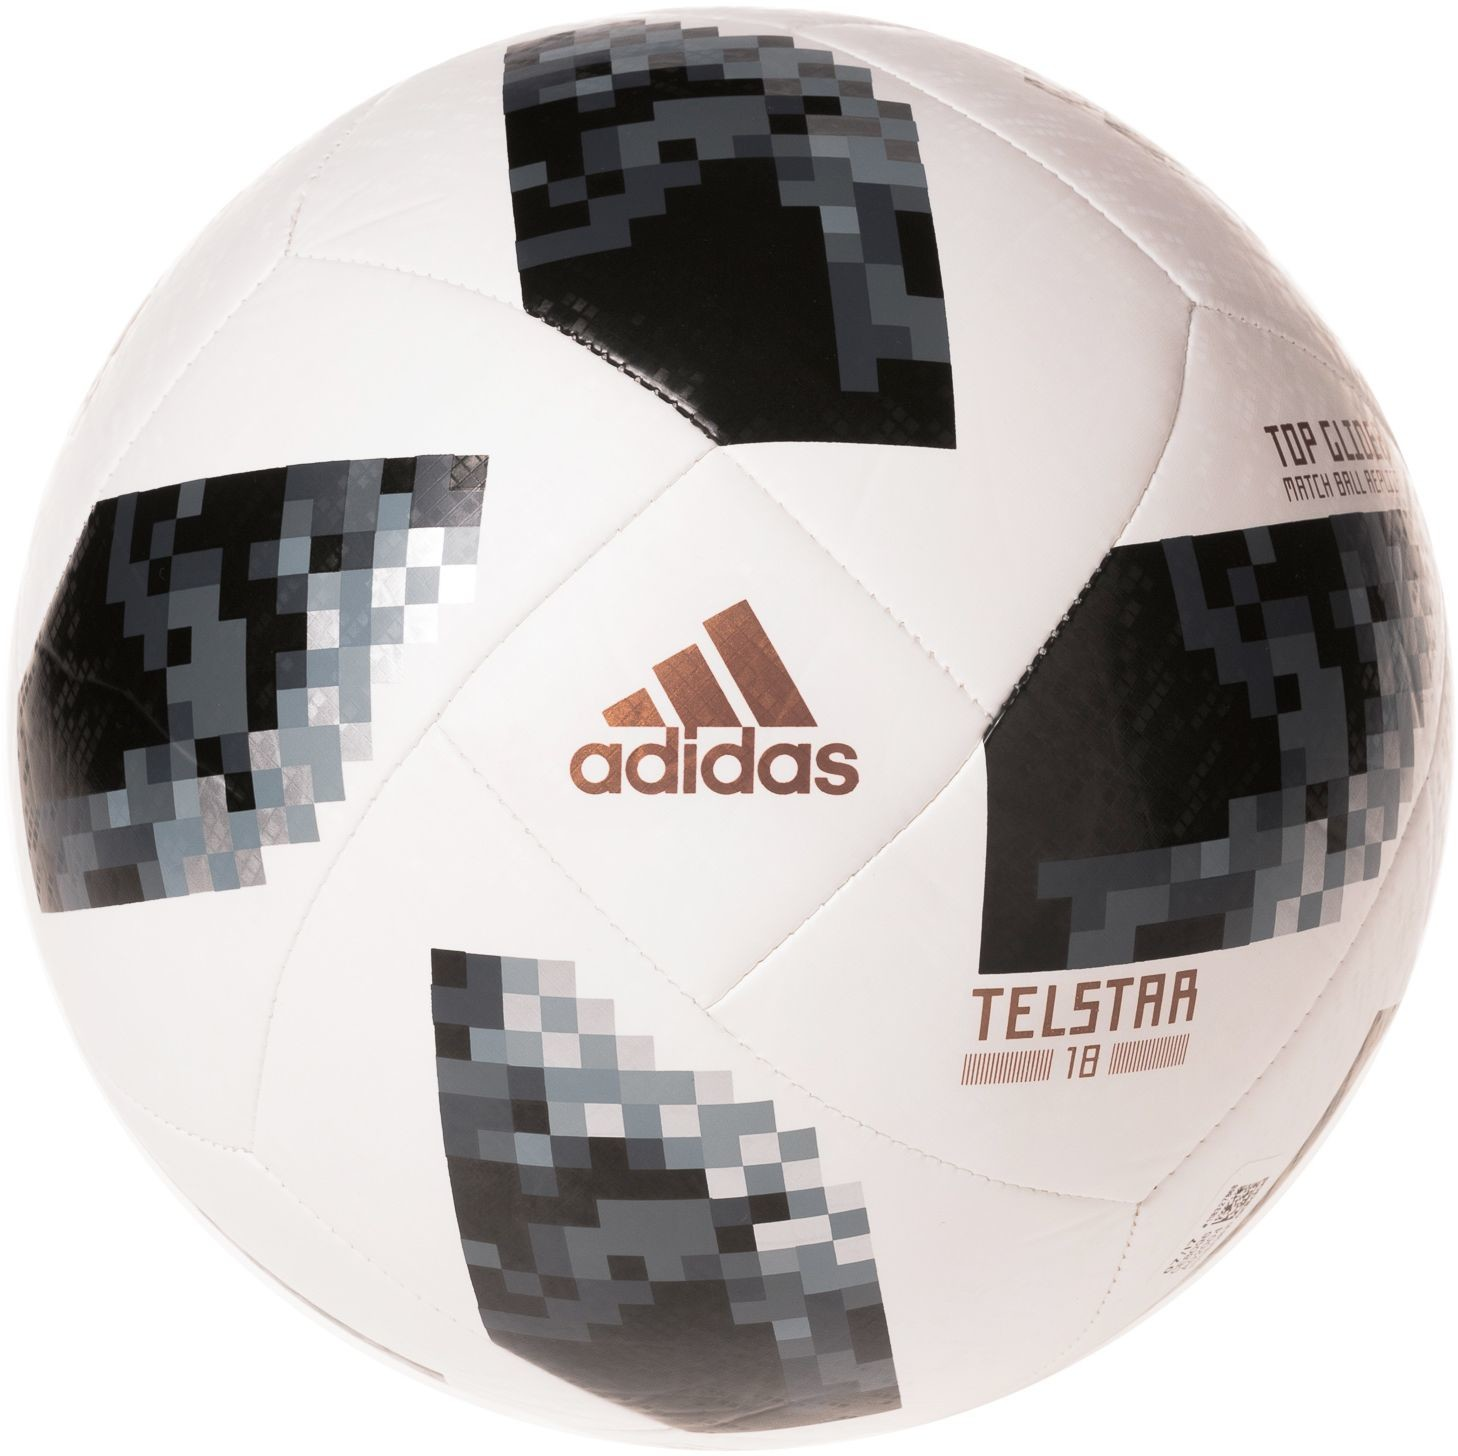 top Adidas PIŁKA NOŻNA TELSTAR WORLD CUP TOP GLIDER CE8096